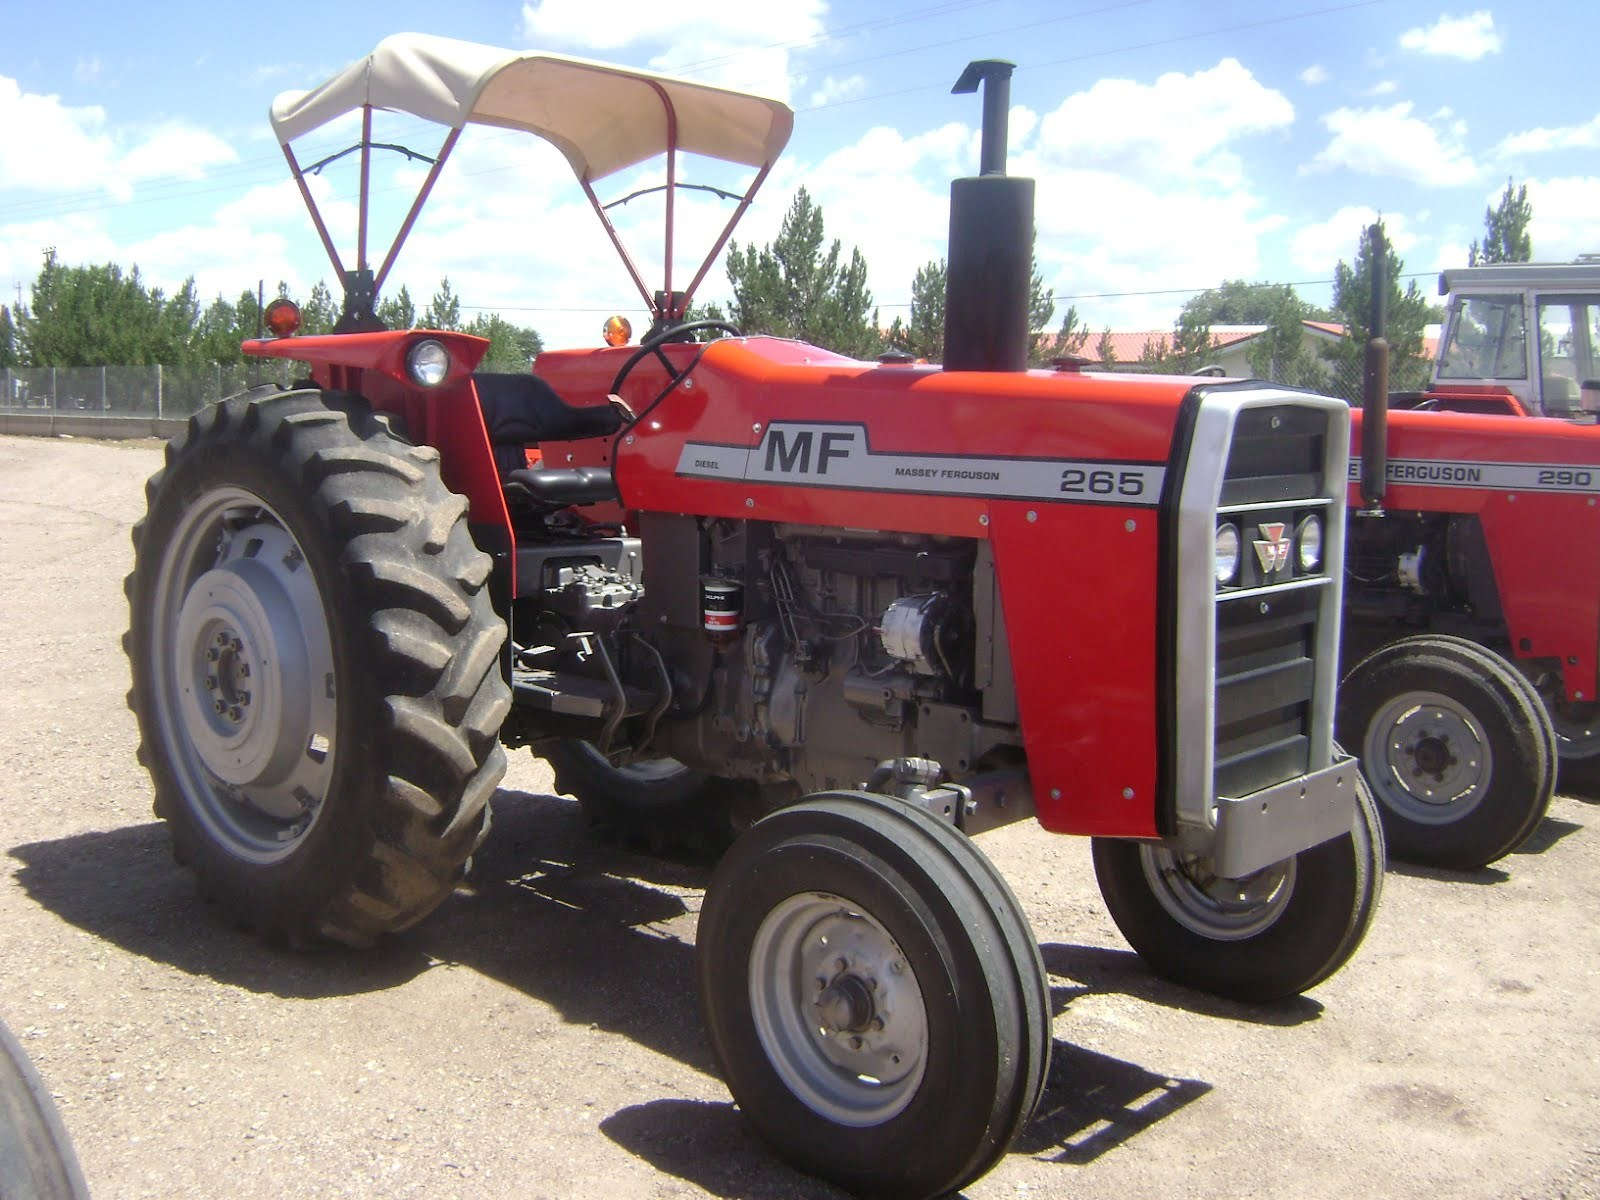 Massey ferguson 398 photo - 6